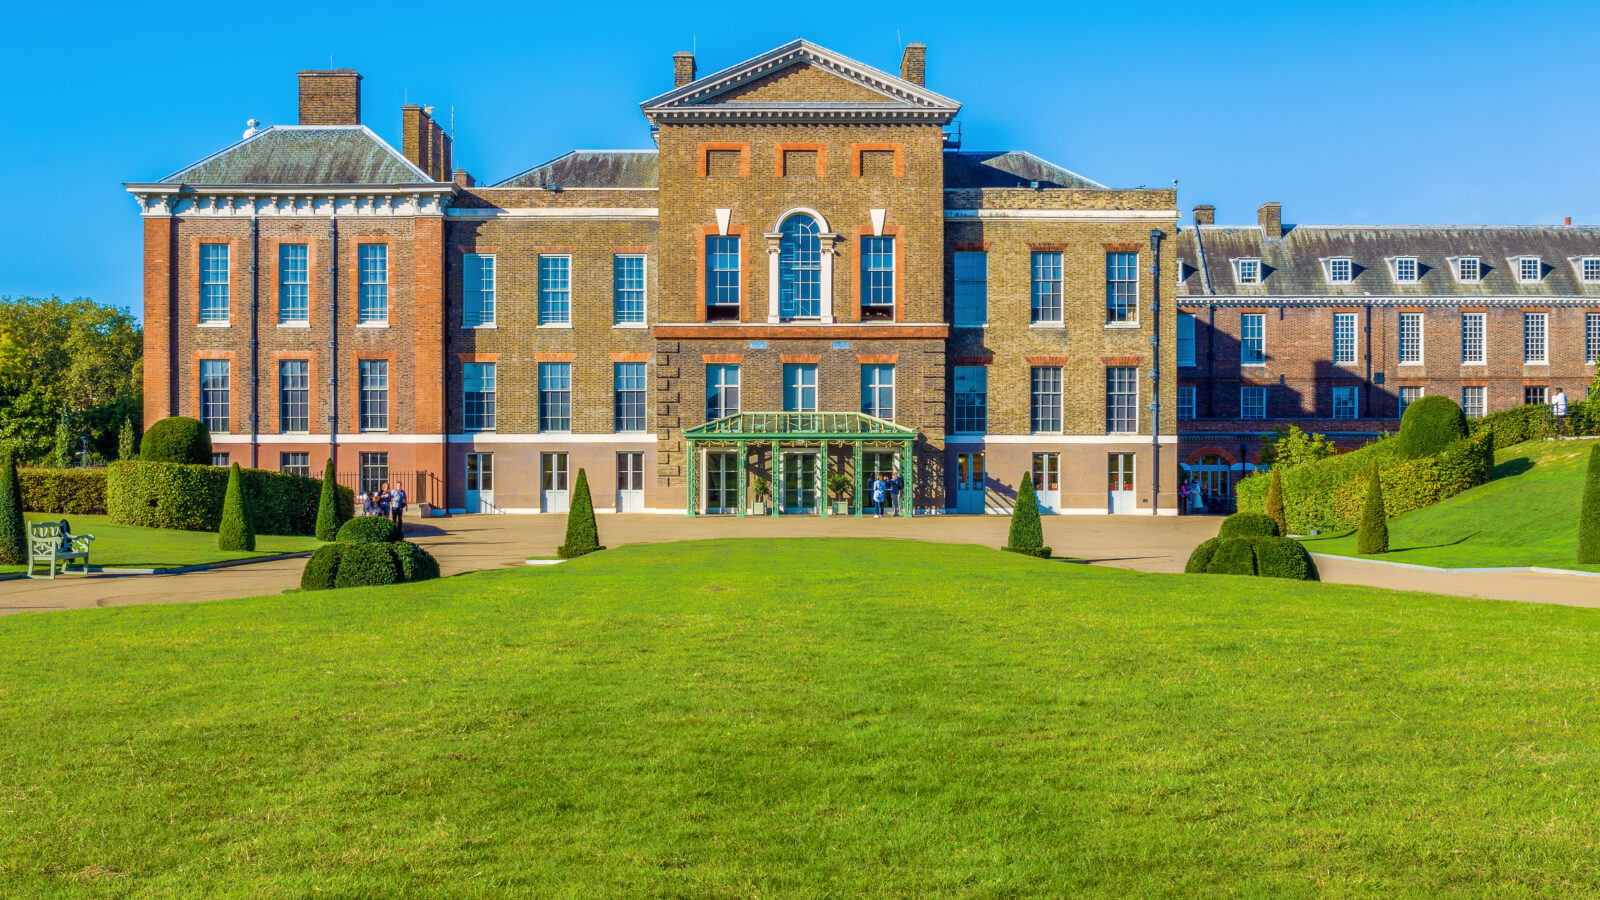 Exterior of Kensington Palace in Hyde Park London-shutterstock 689448691